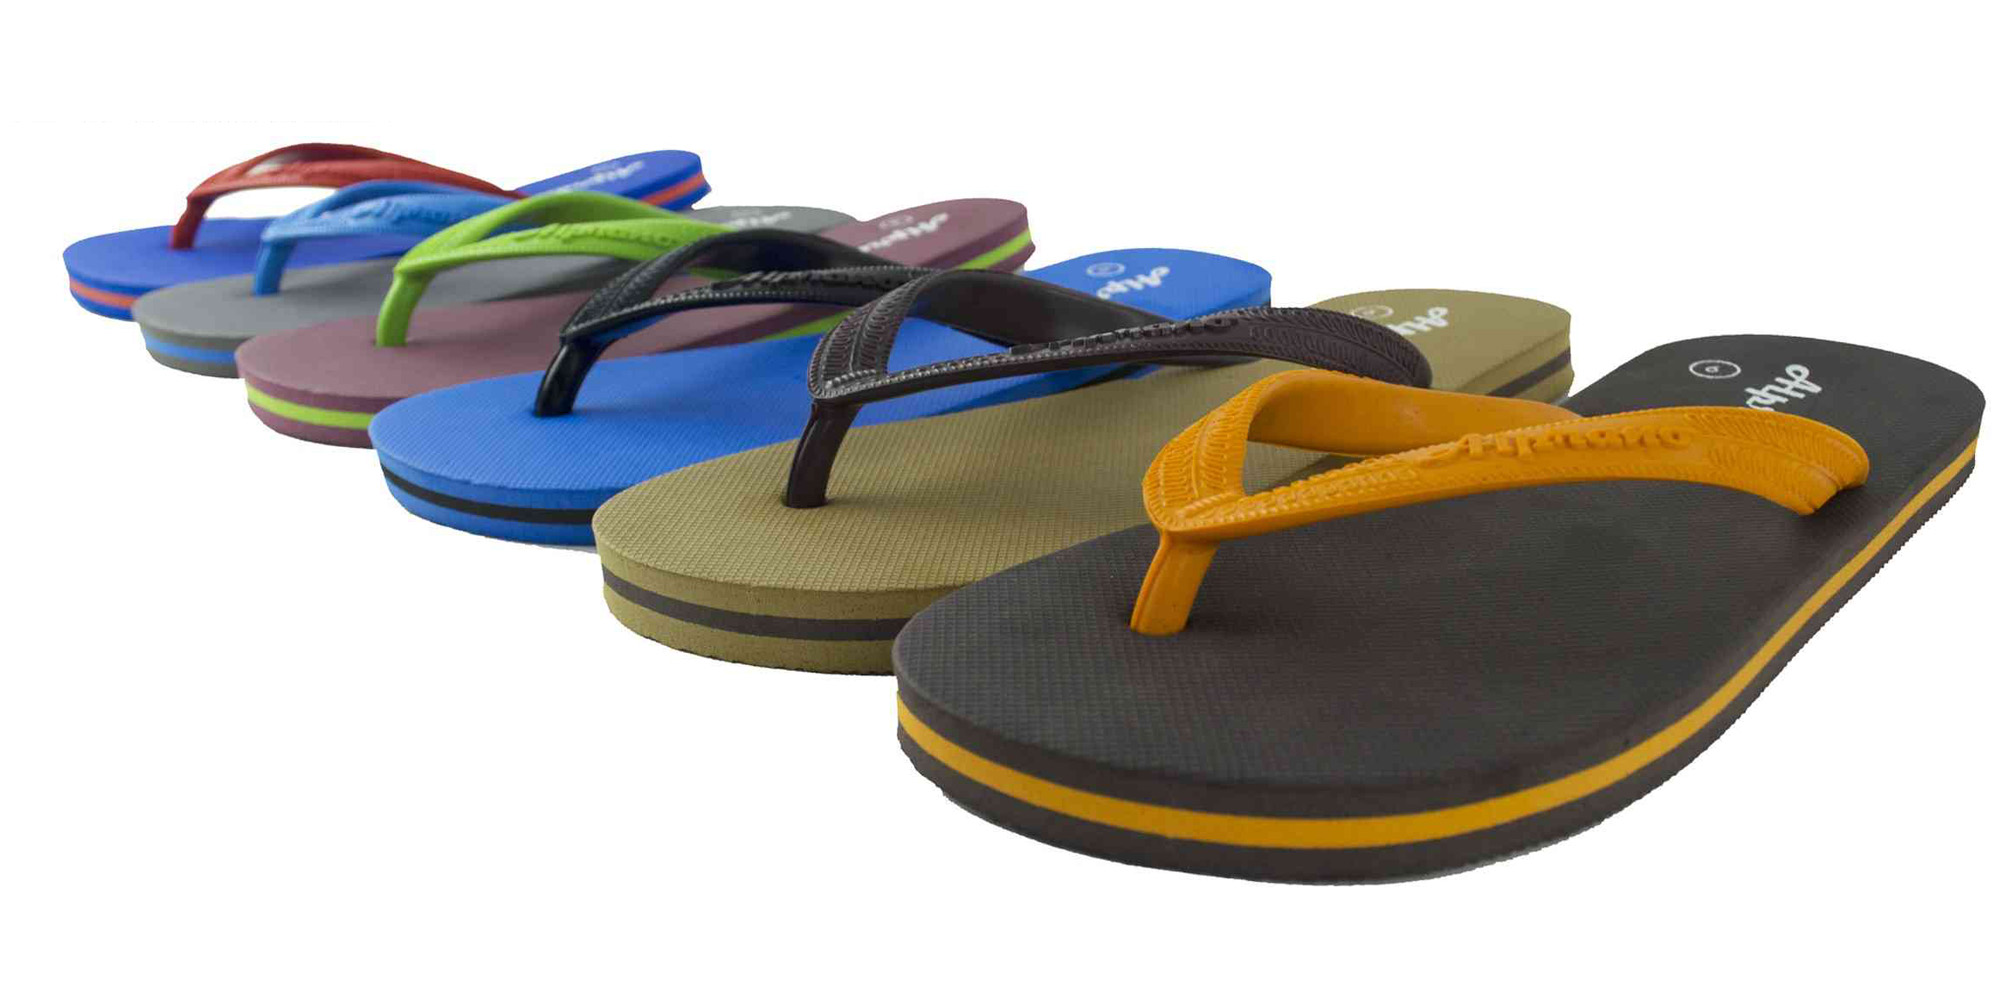 JN-APM06 (UK11) Alprano Slipper